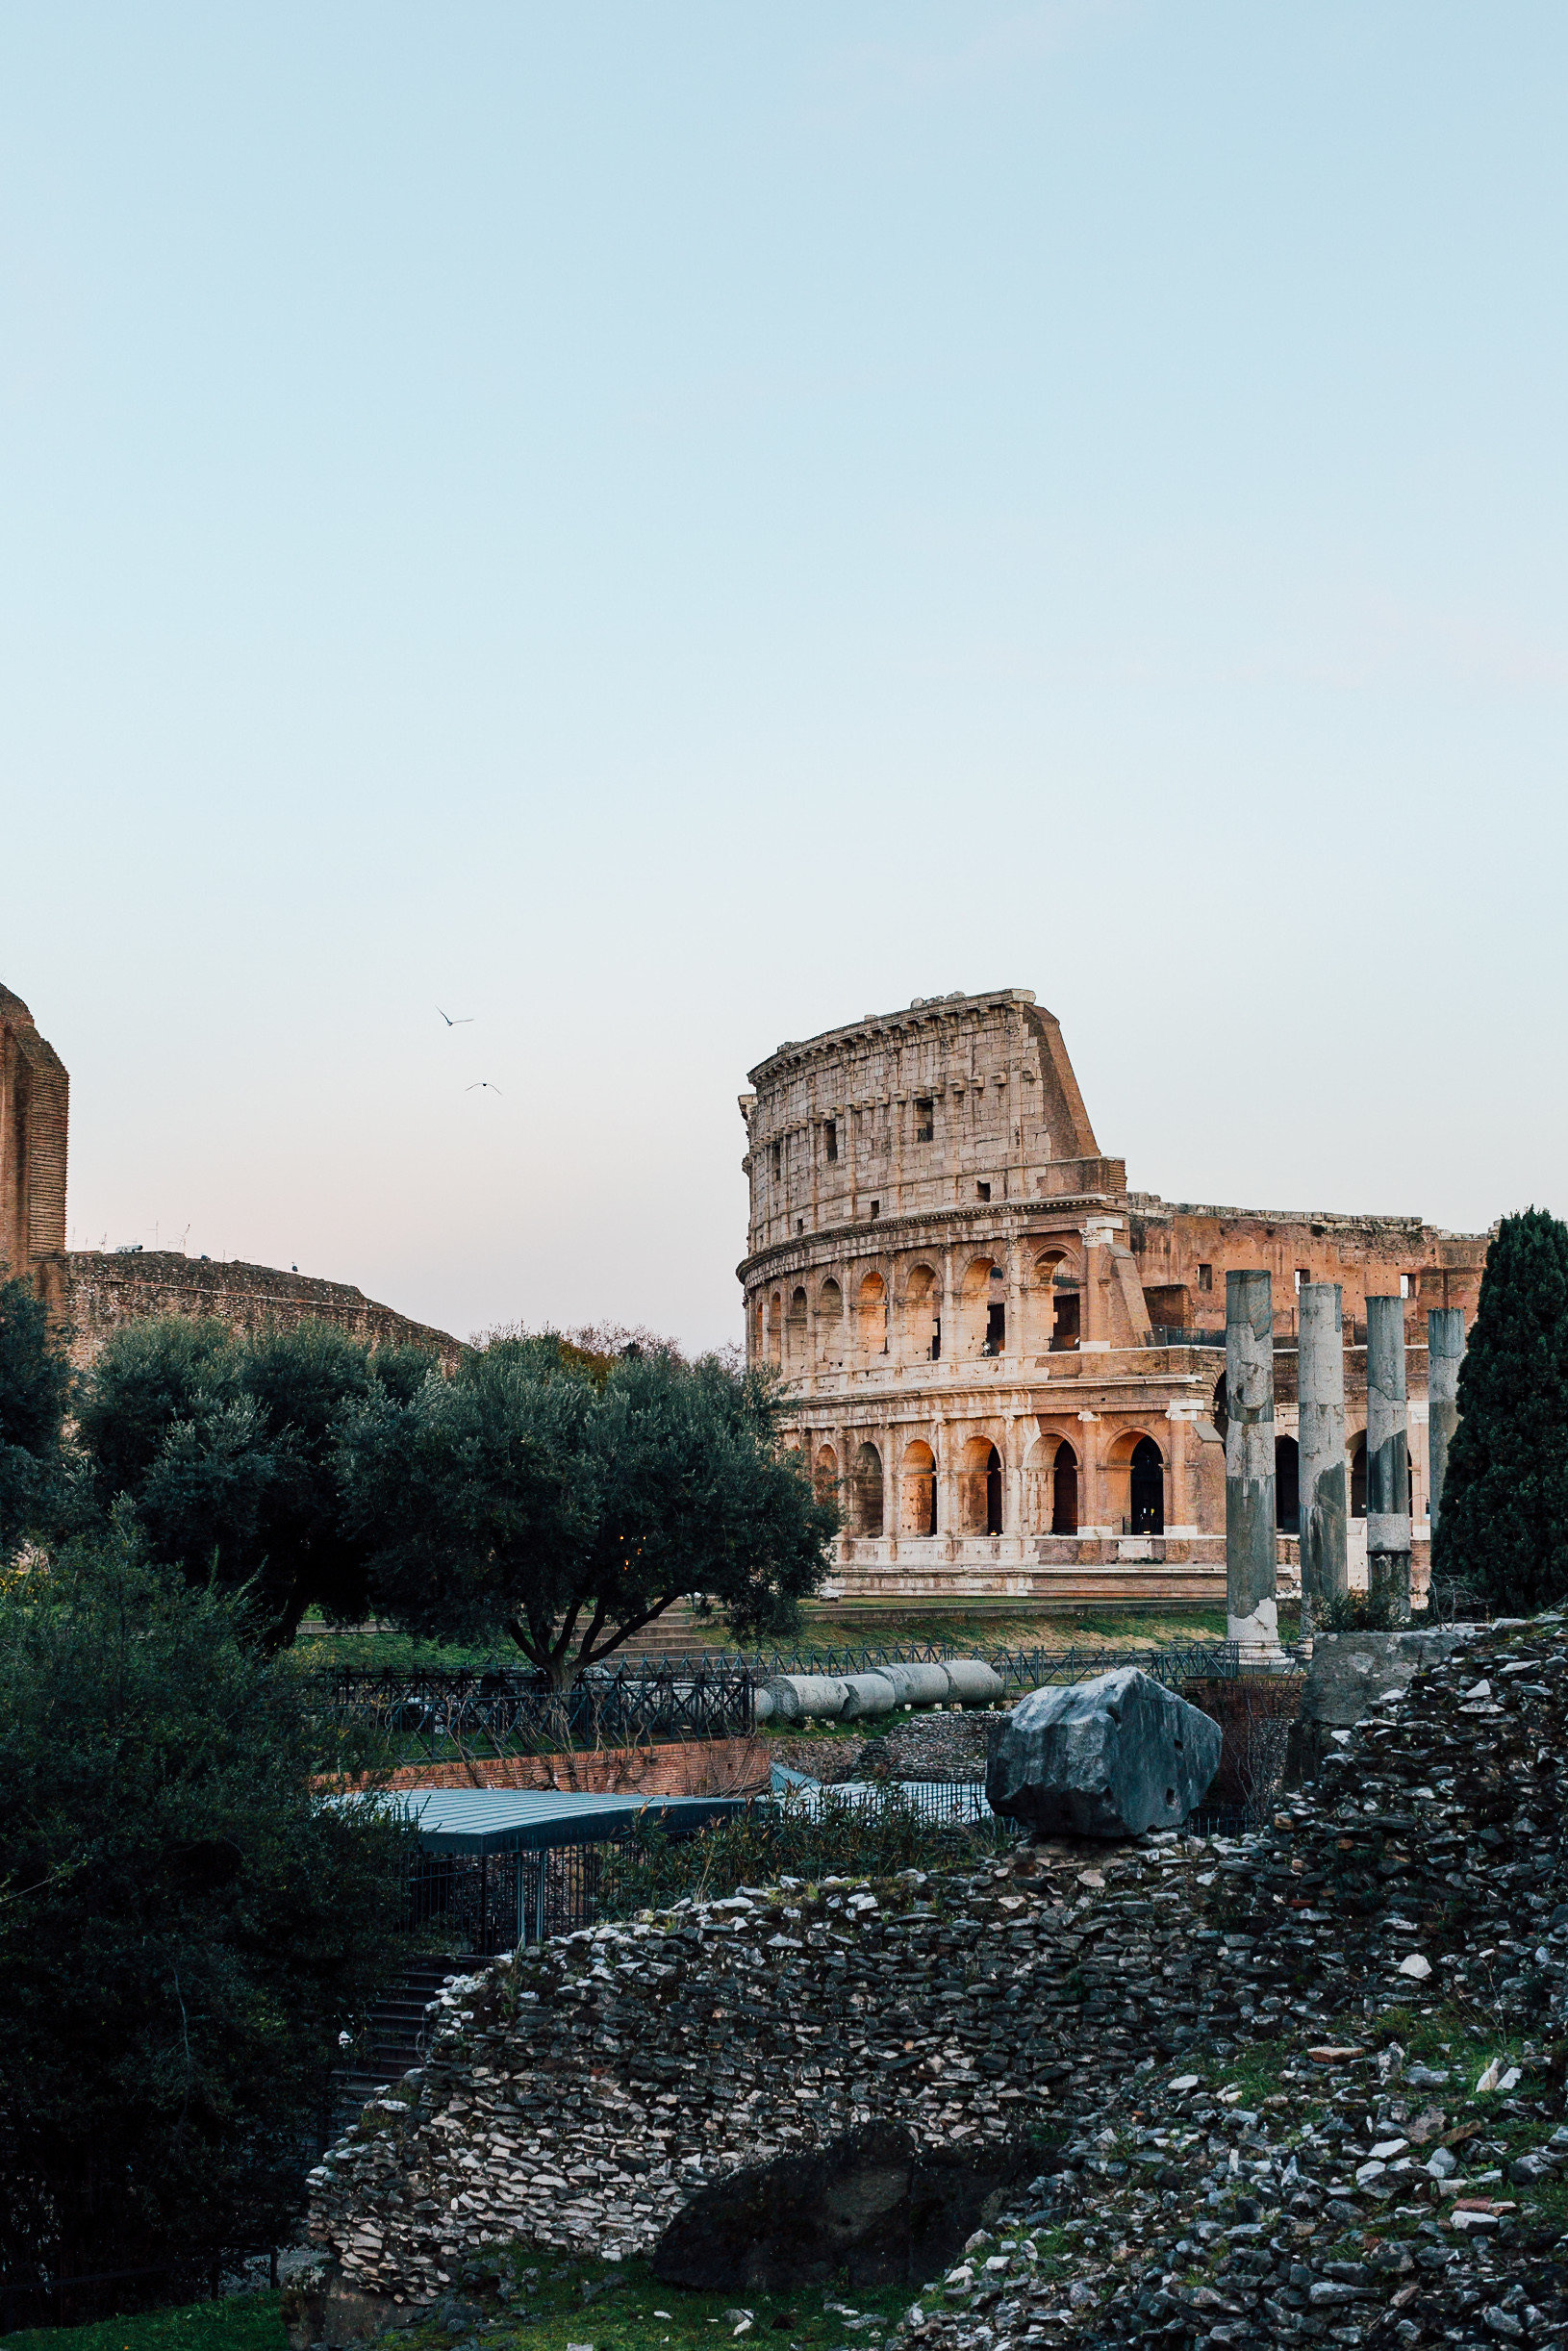 Travel Tips Trip Ideas outdoor sky building historic site landmark archaeological site Ruins ancient history fortification castle temple ancient rome château stone ruin